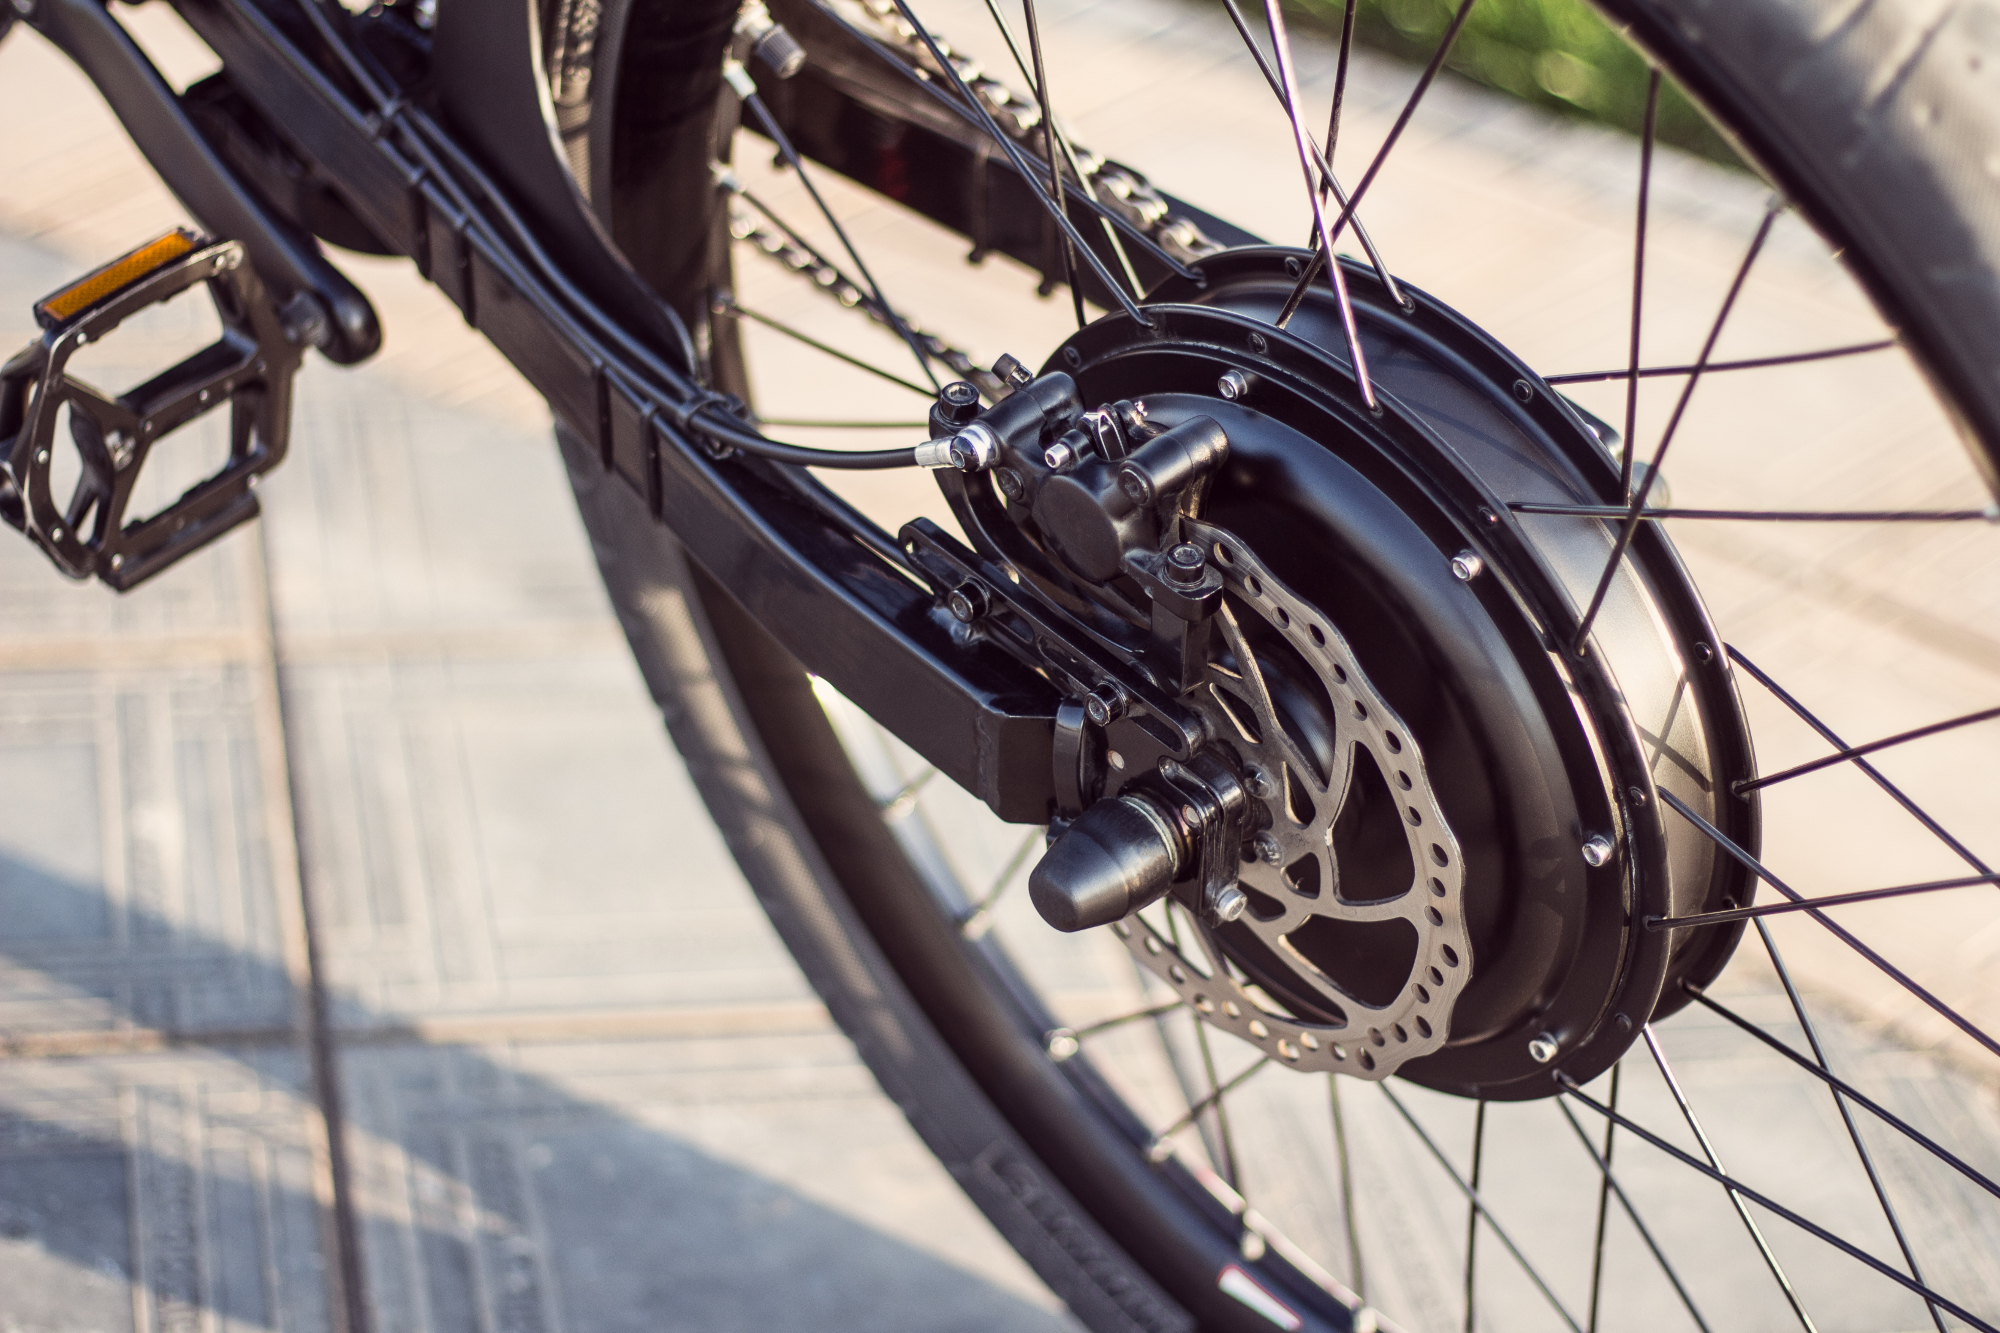 e-bike repair and maintenance